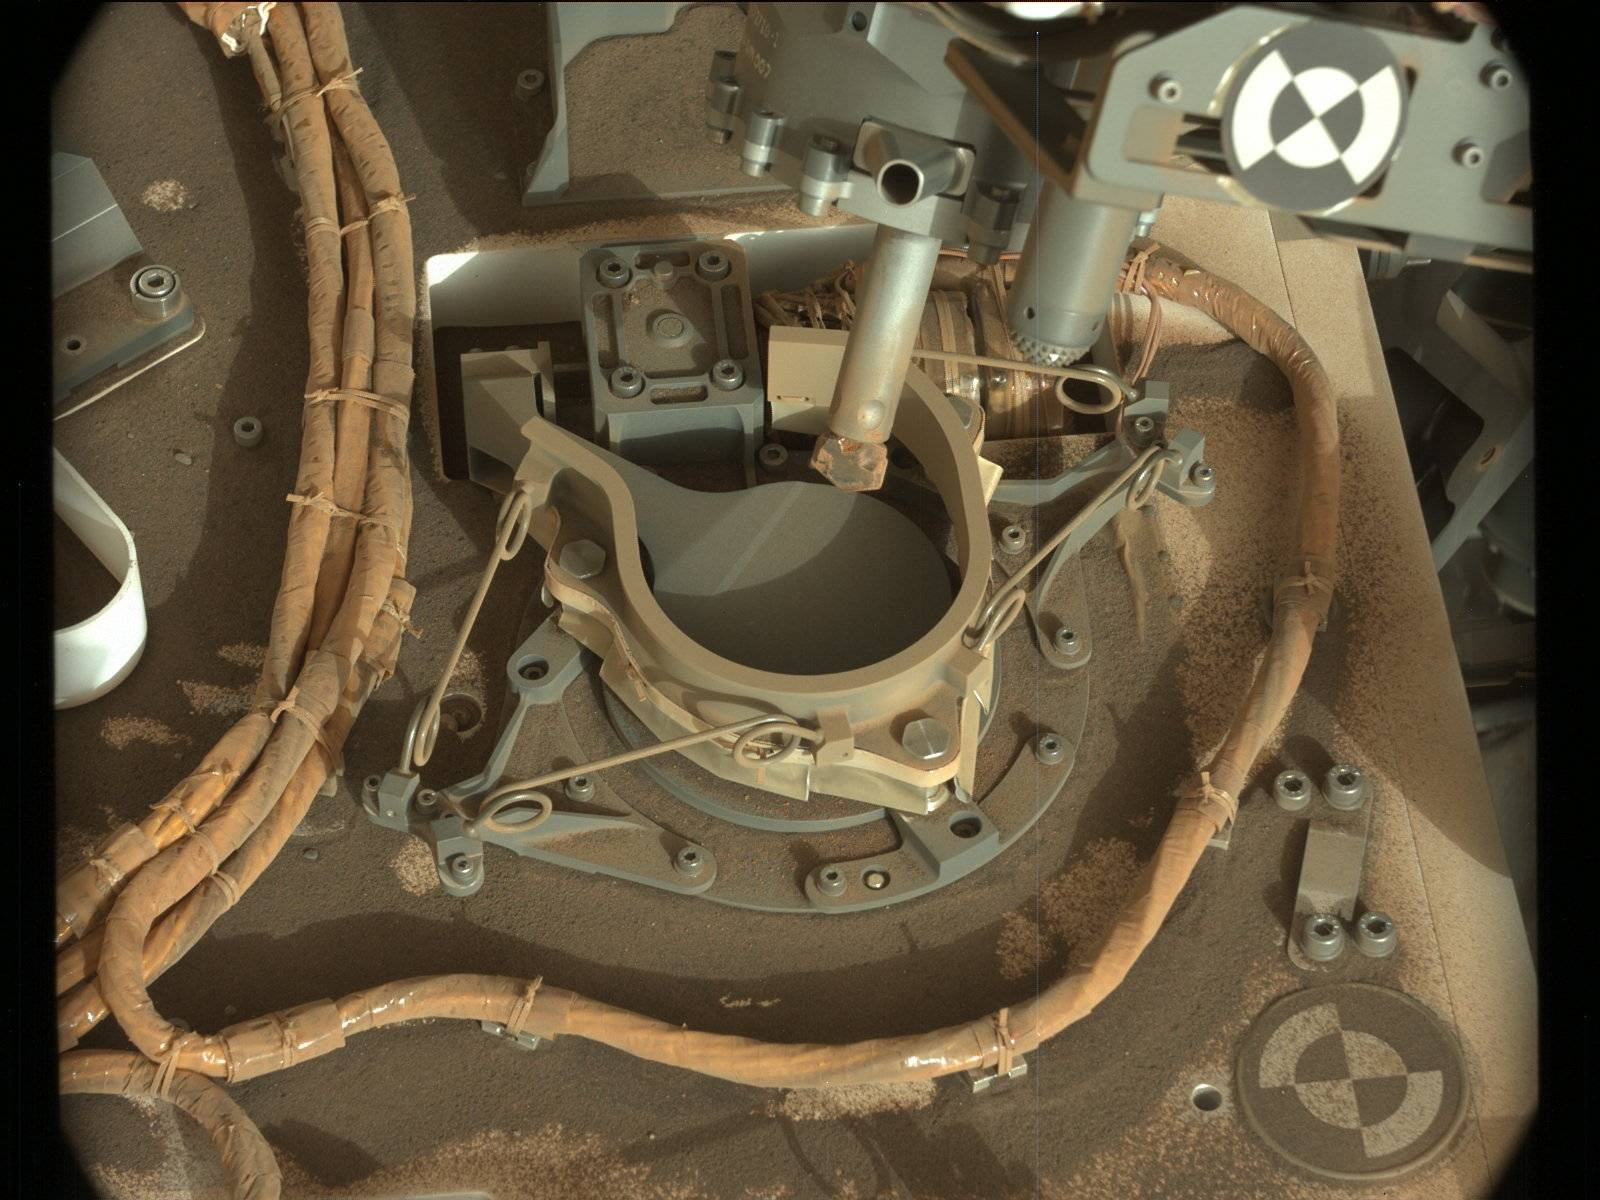 The drill bit of NASA's Curiosity Mars rover over one of the sample inlets on the rover's deck. The inlets lead to Curiosity's onboard laboratories. This image was taken on Sol 2068 by the rover's Mast Camera (Mastcam).